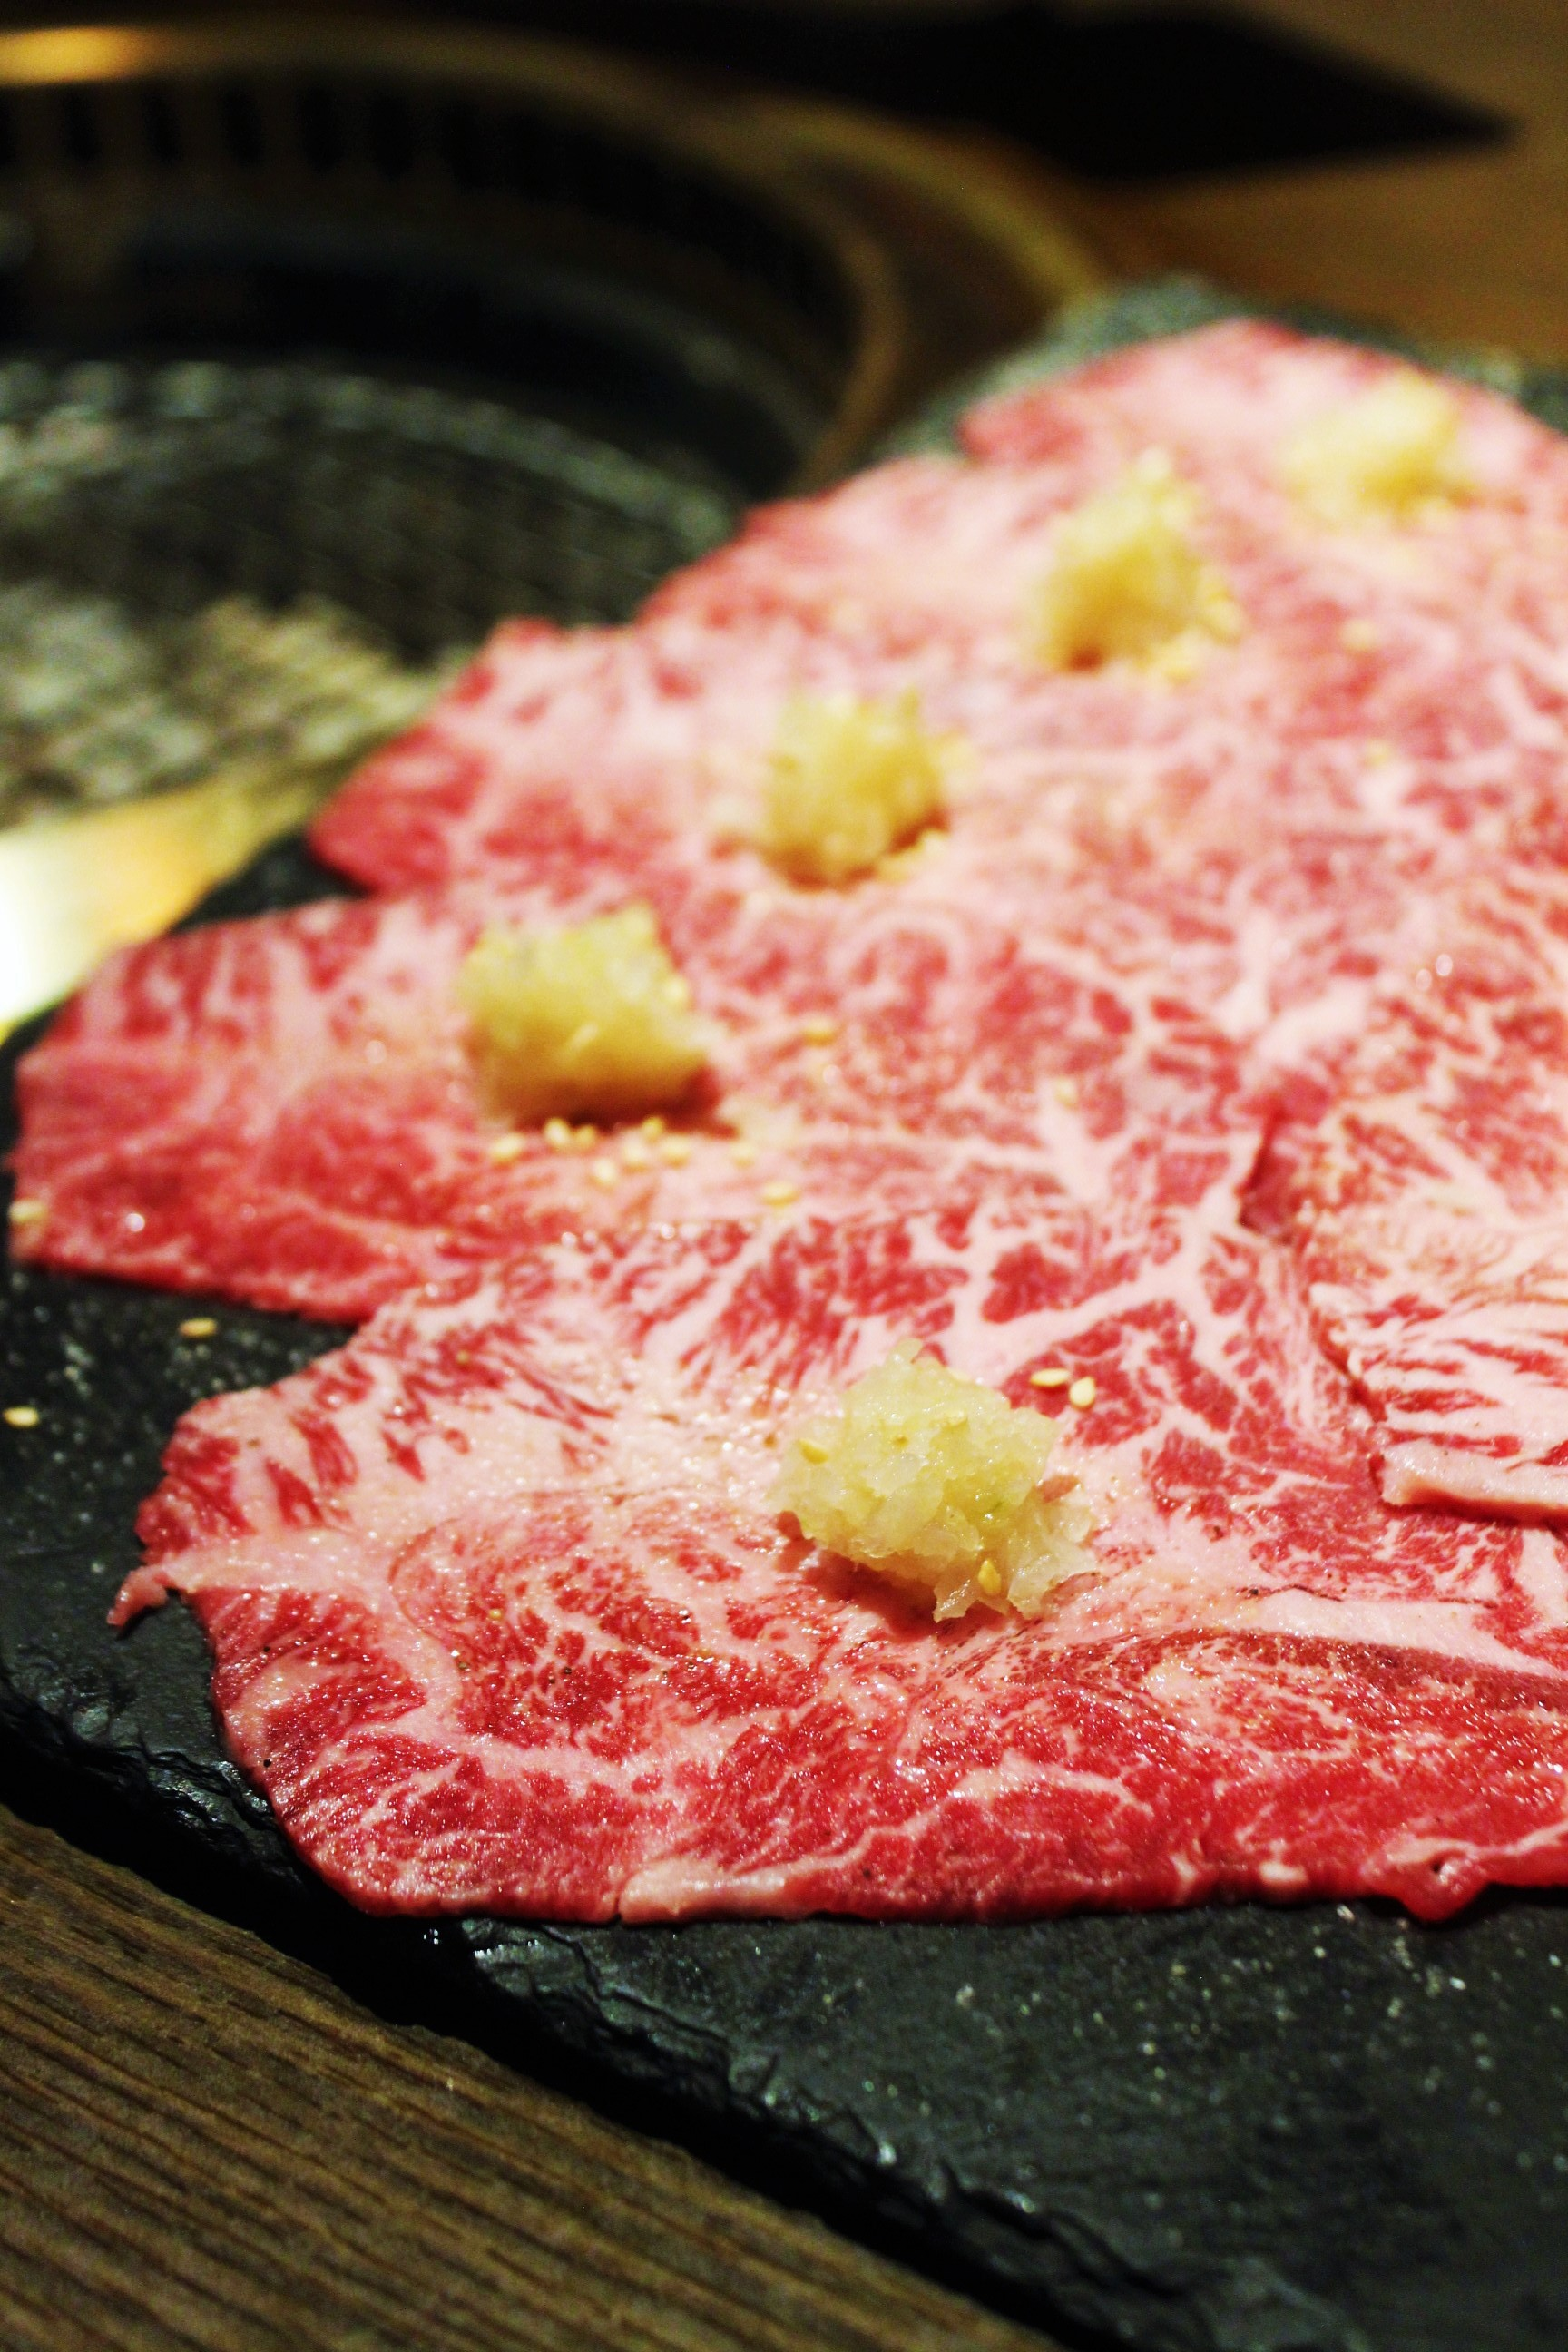 Wagyu Beef Shoulder Marinated in Sweet Soy with Grated Radish and Onion at 大腕 in Taiwan